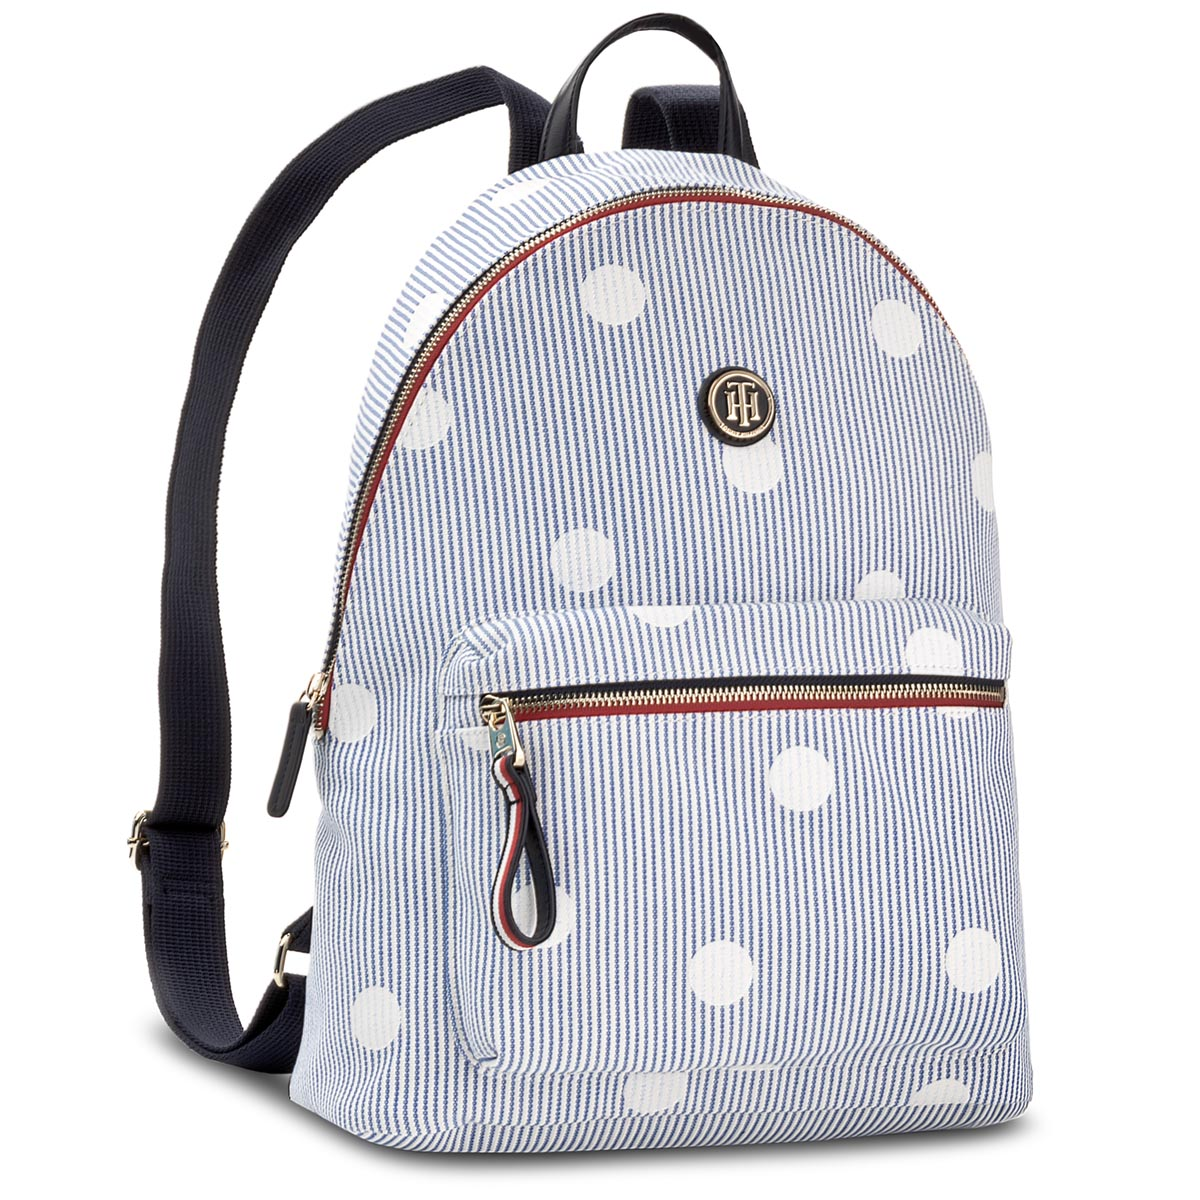 Plecak TOMMY HILFIGER - Poppy Backpack Canvas Print AW0AW05312 902